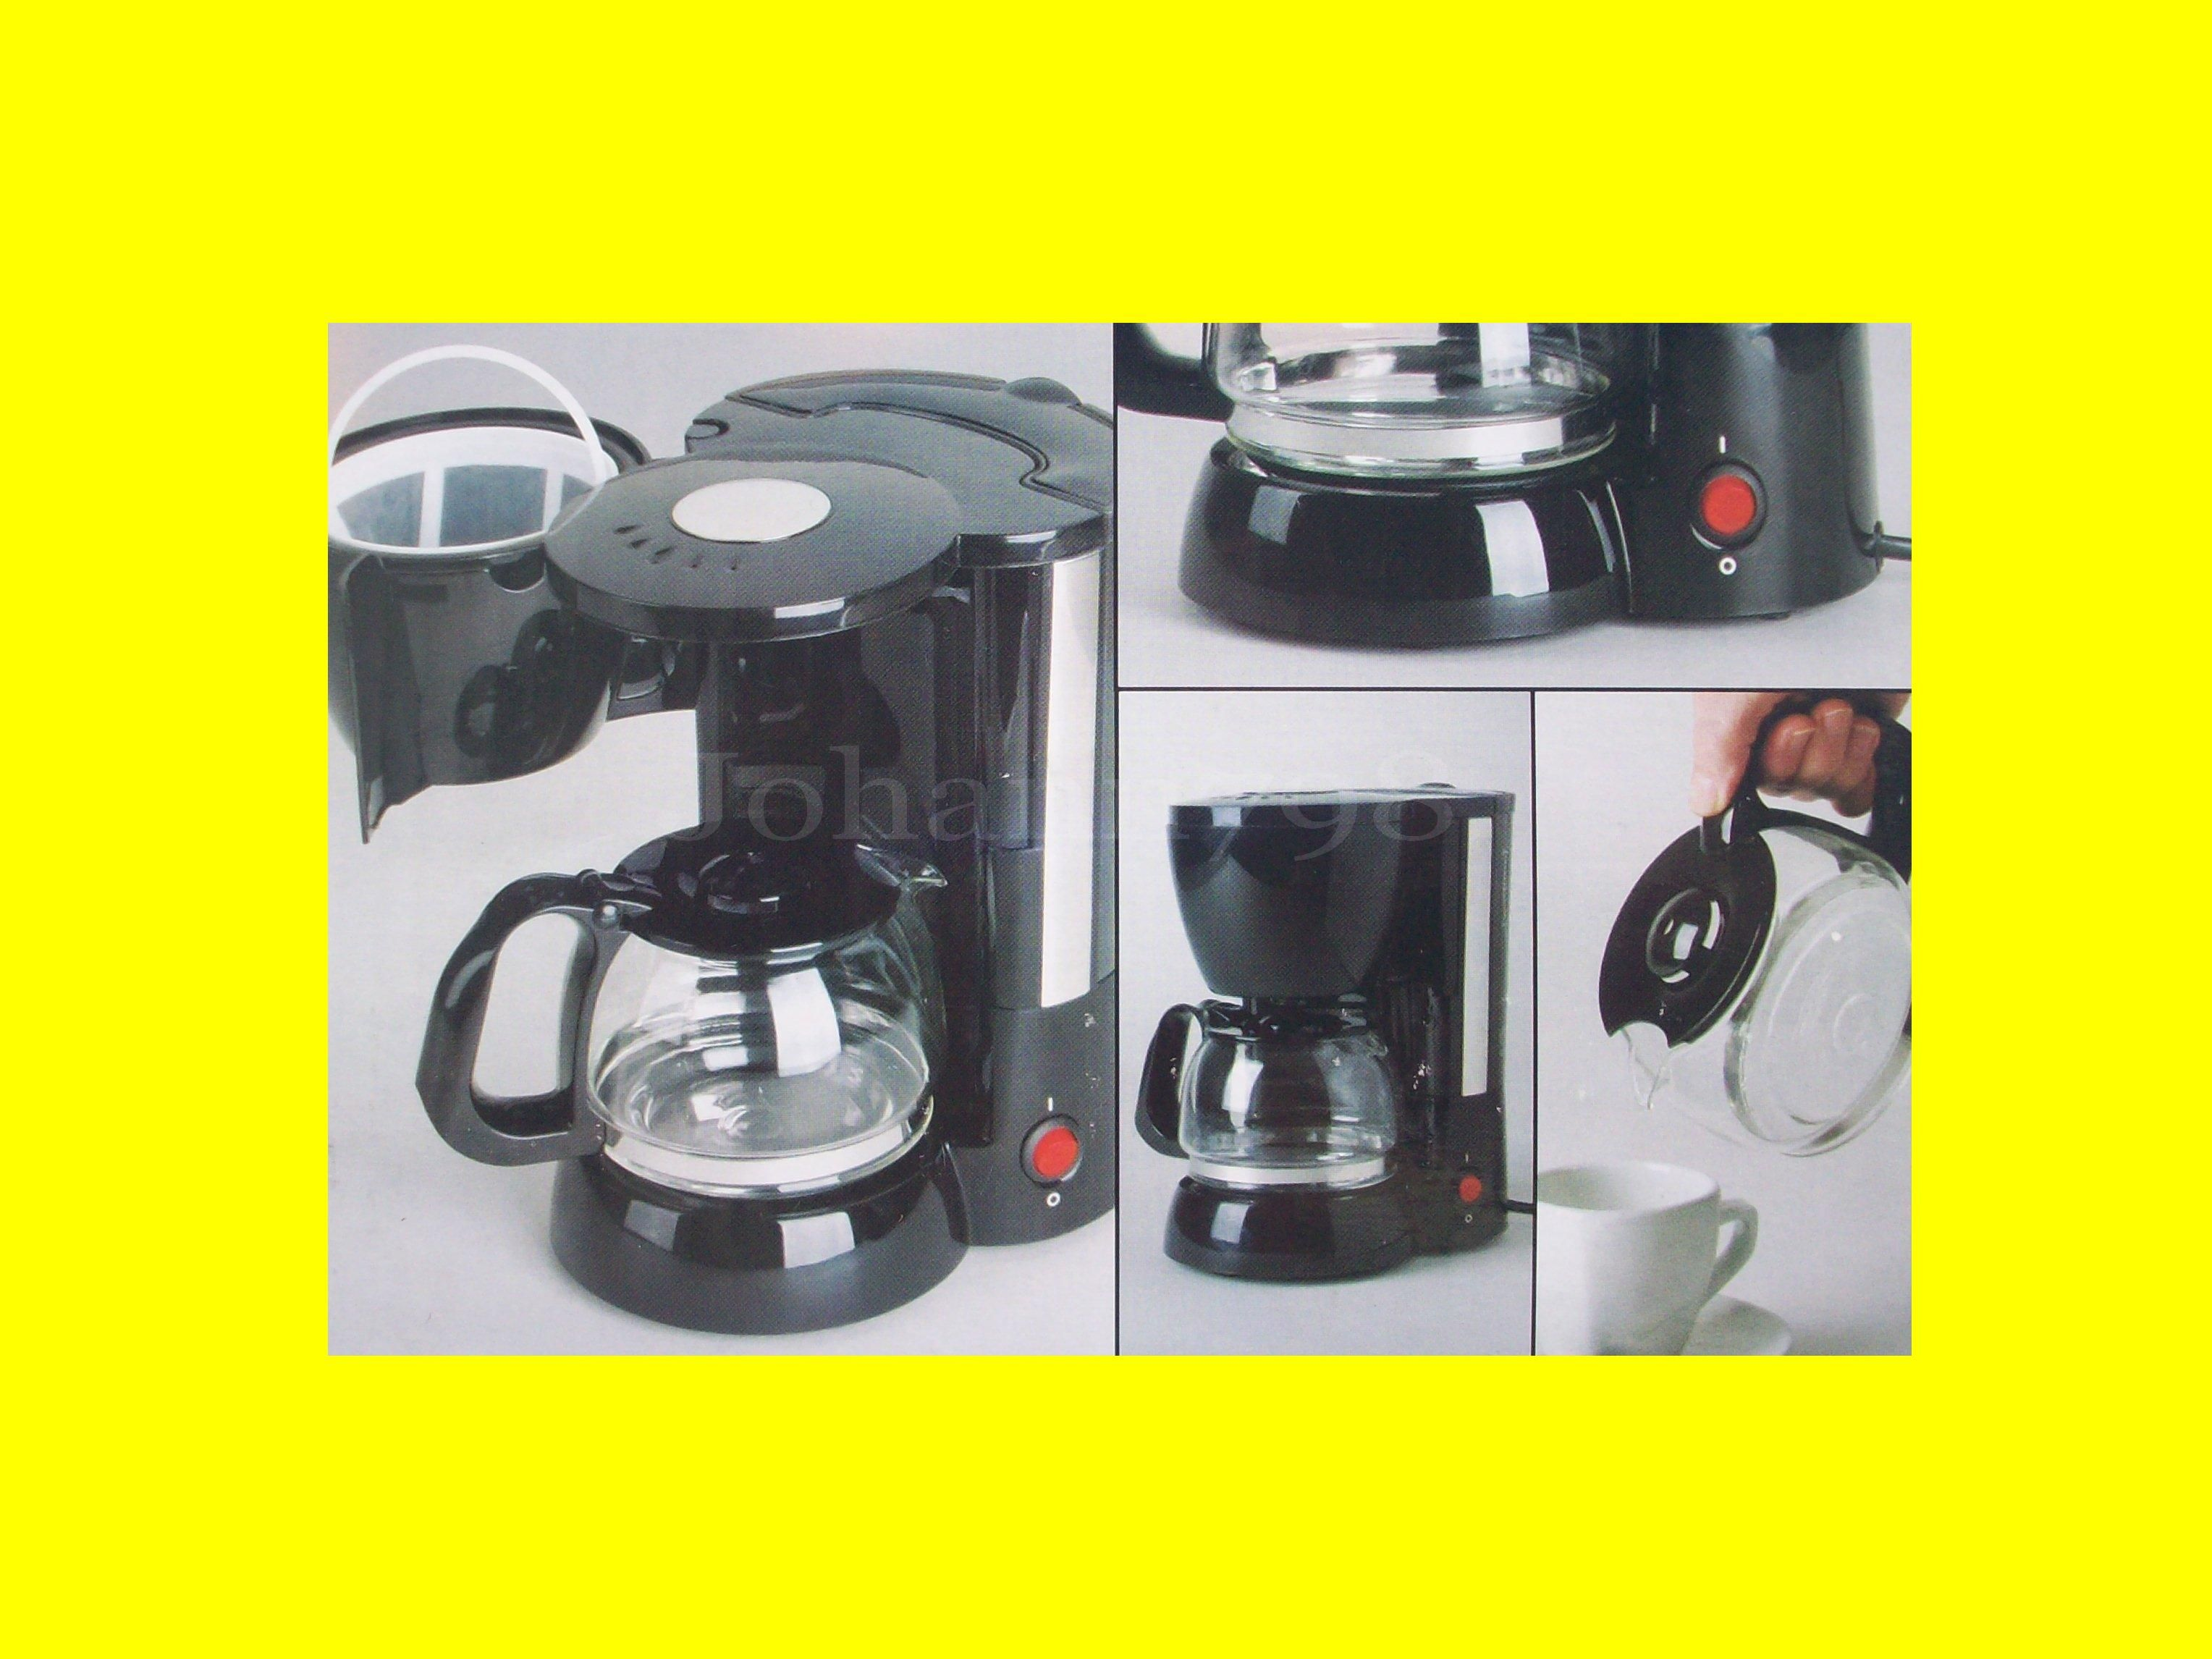 kaffeemaschine auto neu kaffee maschine wasserkocher kocher 12 v 170 w ebay. Black Bedroom Furniture Sets. Home Design Ideas